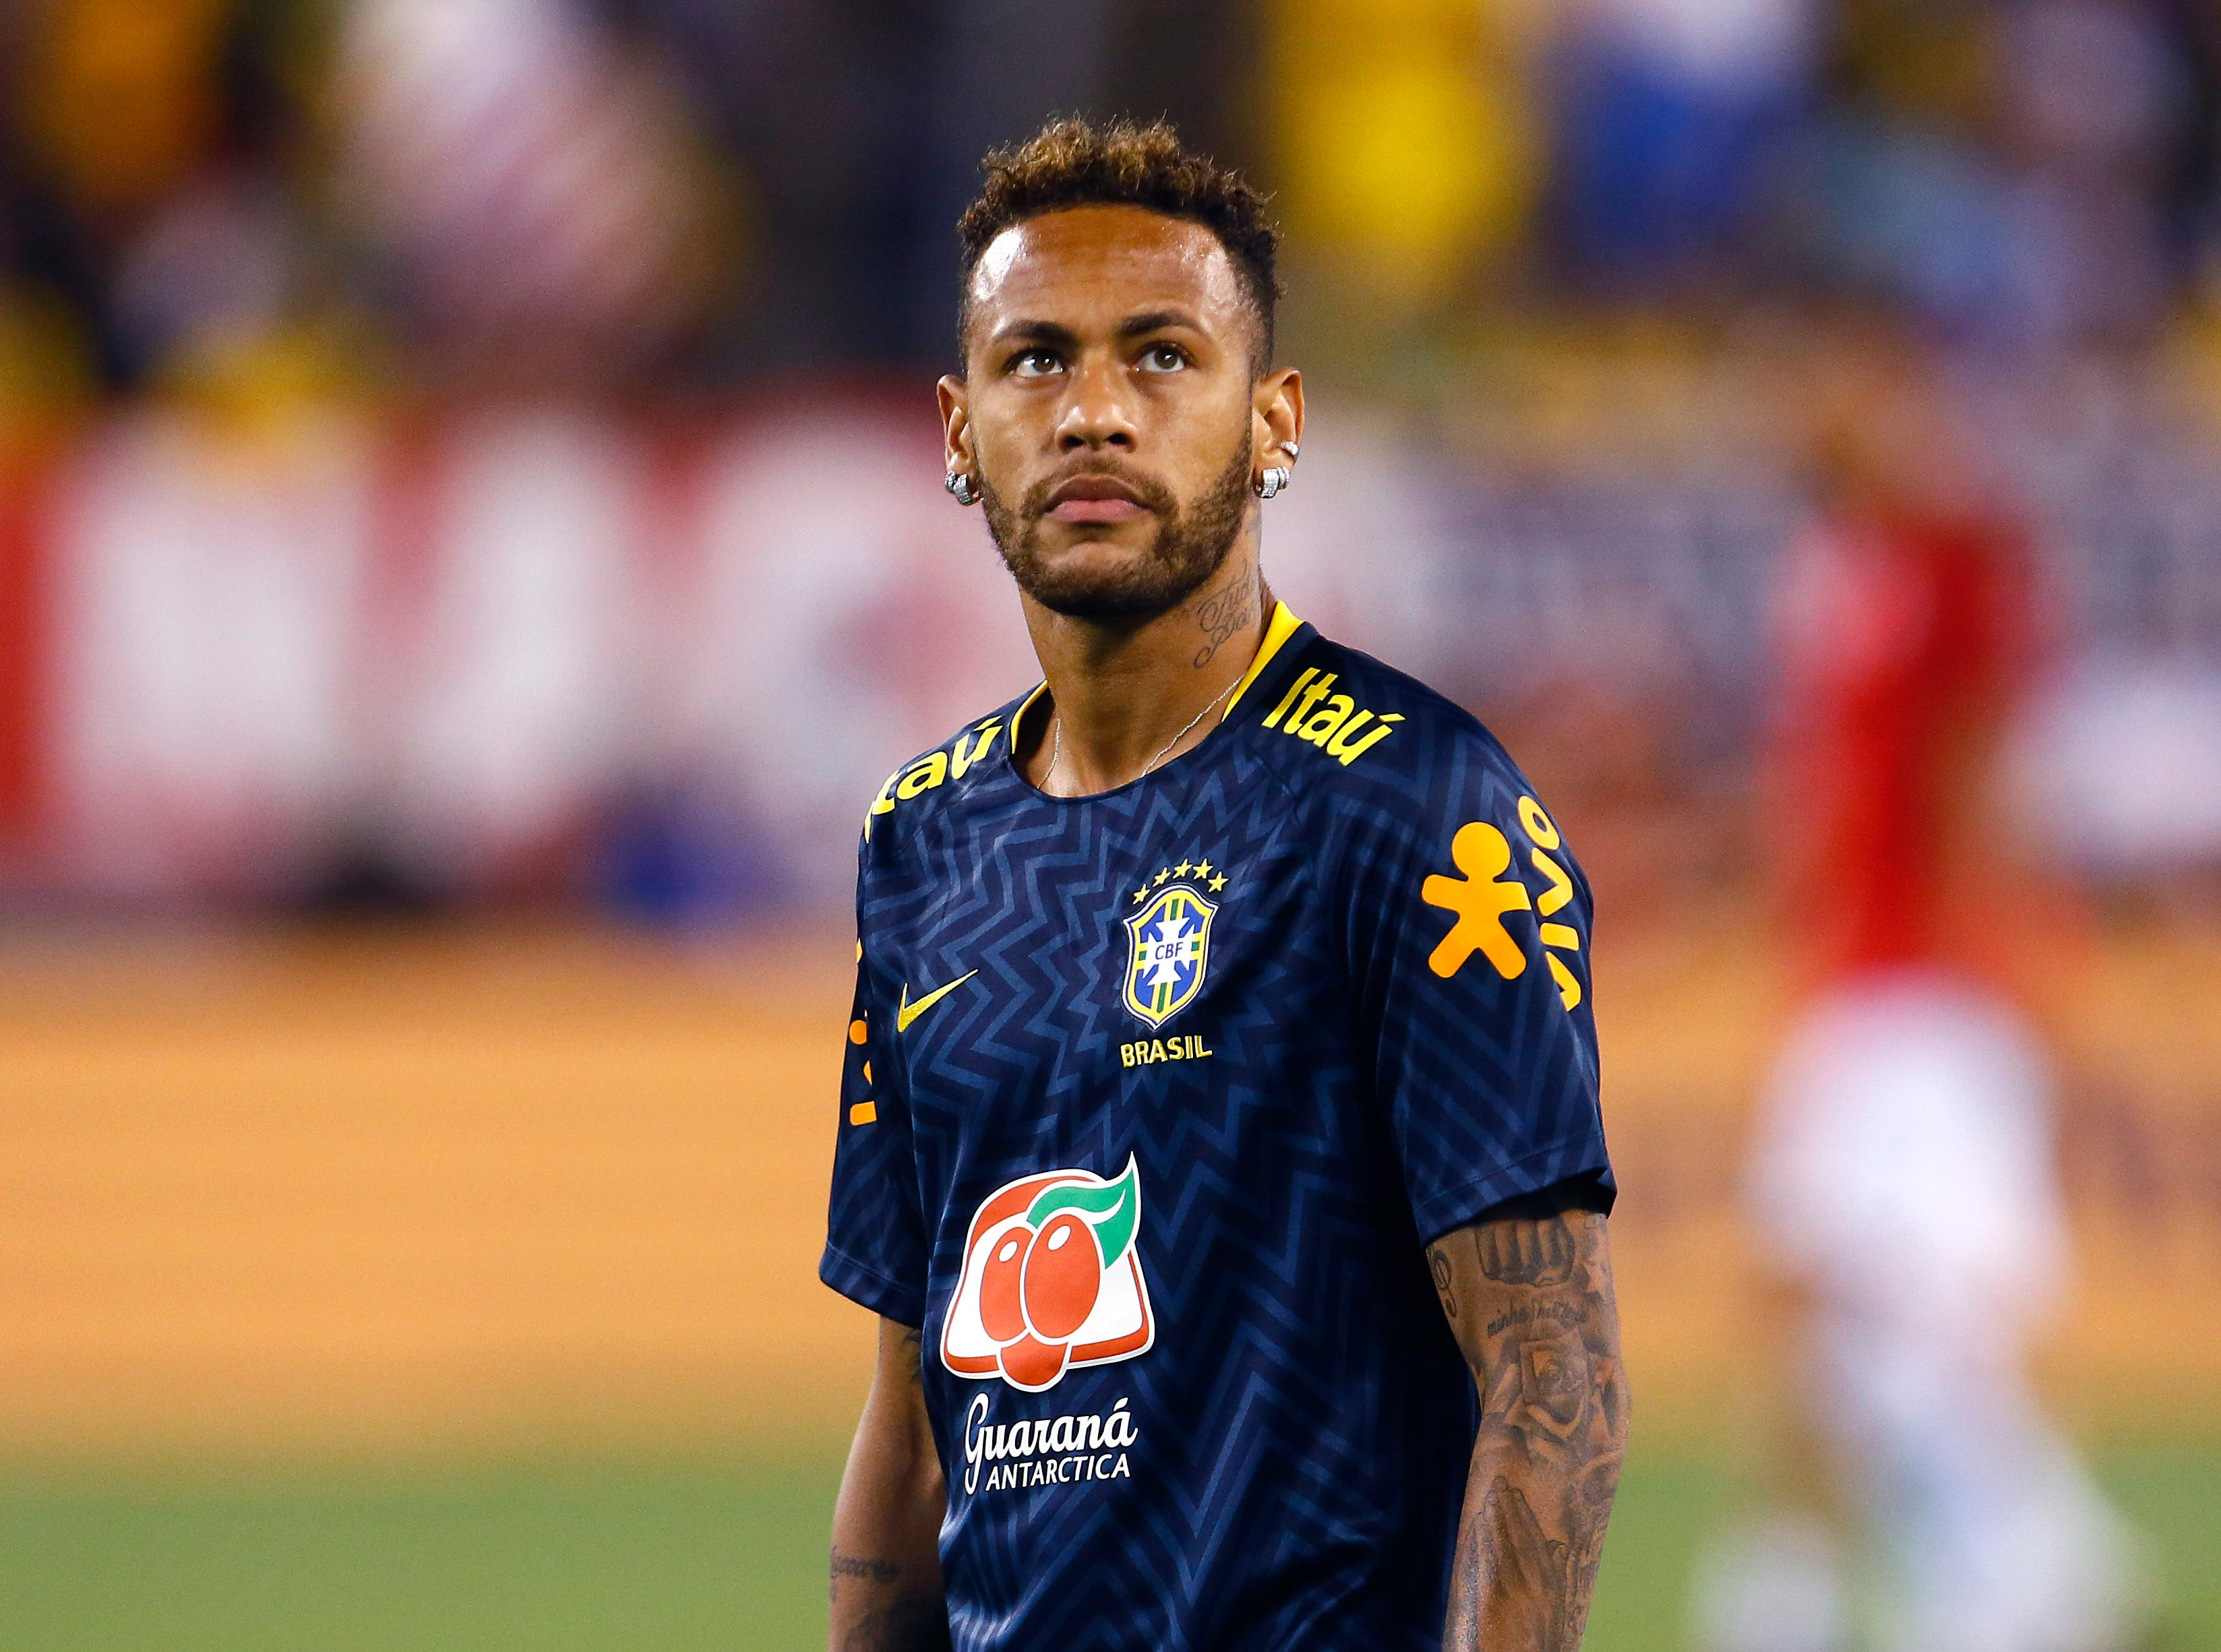 Brazilian and French club Paris Saint-Germain star Neymar takes on the  U.S. Men's National Team's in an international friendly against Brazil at MetLife Stadium in East Rutherford, N.J. The US was defeated 2-0 by the five-time World Cup champions. September 7, 2018, East Rutherford, NJ